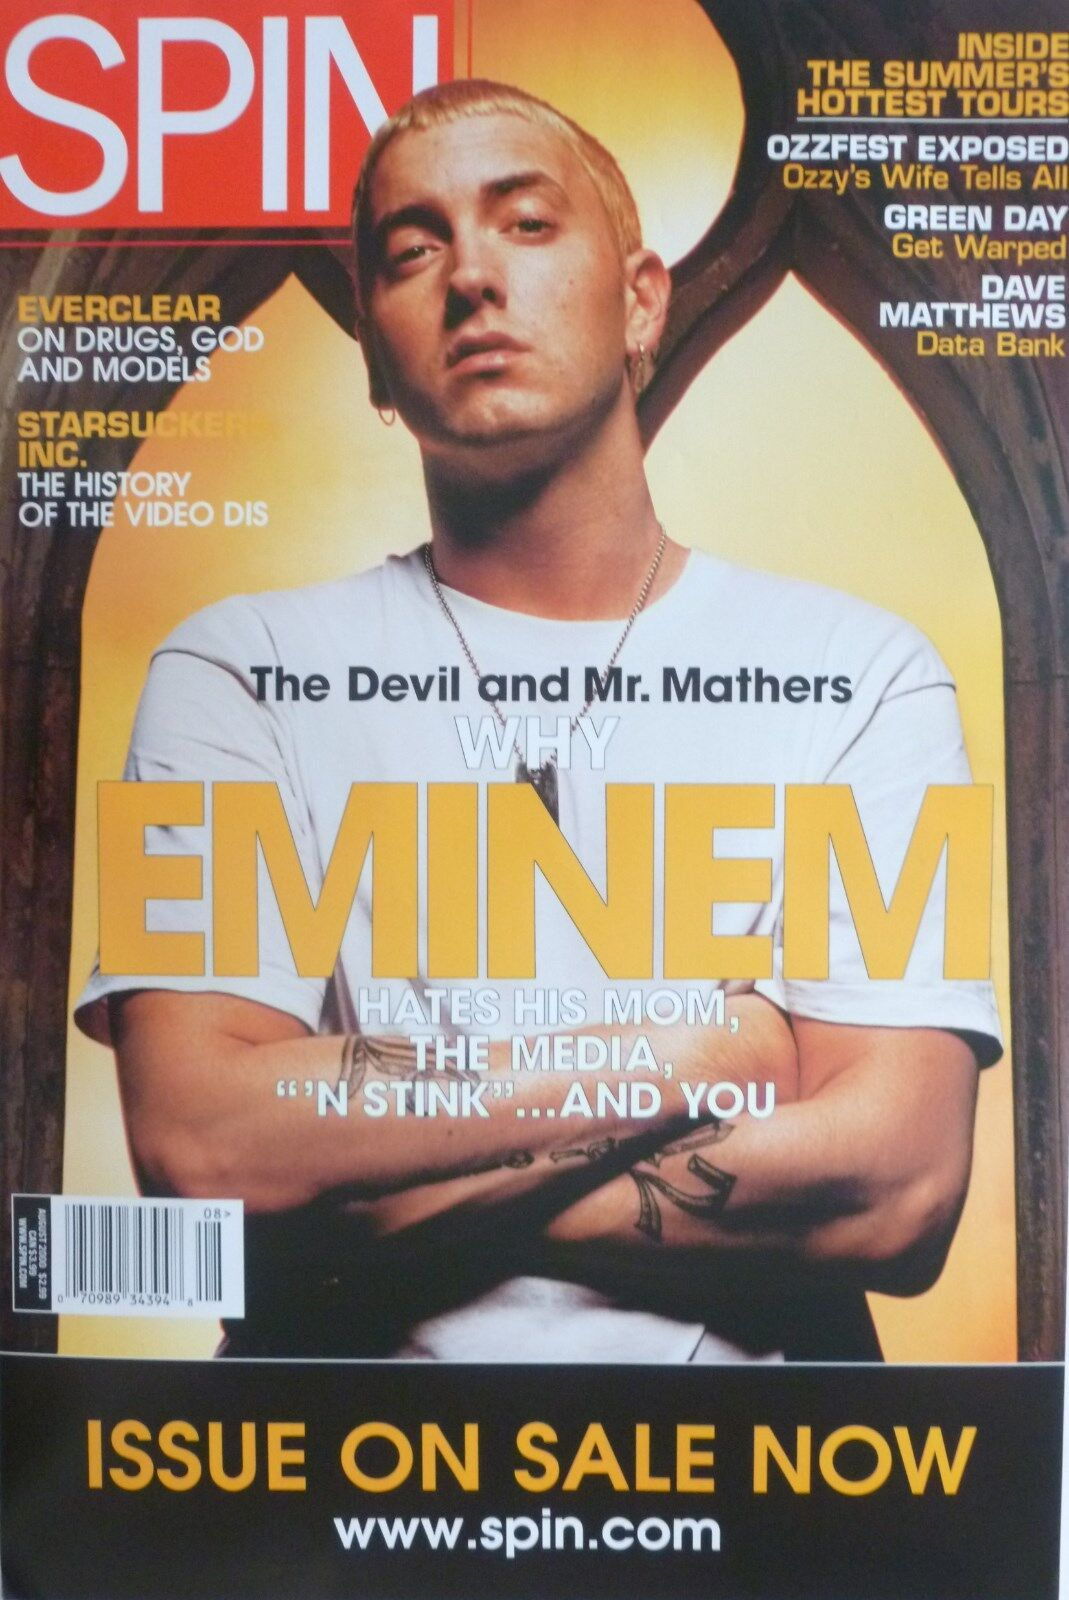 Eminem quot spin magazine quot poster from 2000 the devil and mr mathers